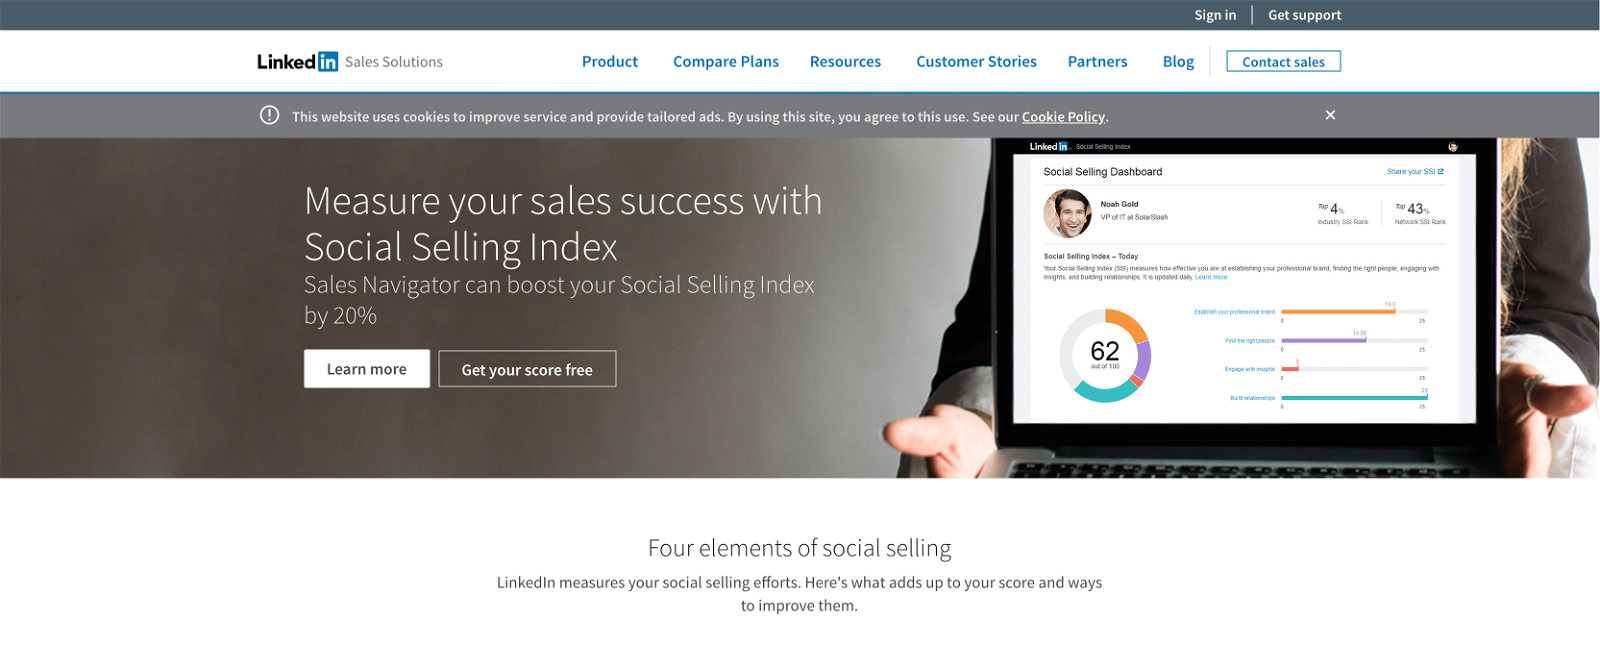 social-selling-index-dashboard